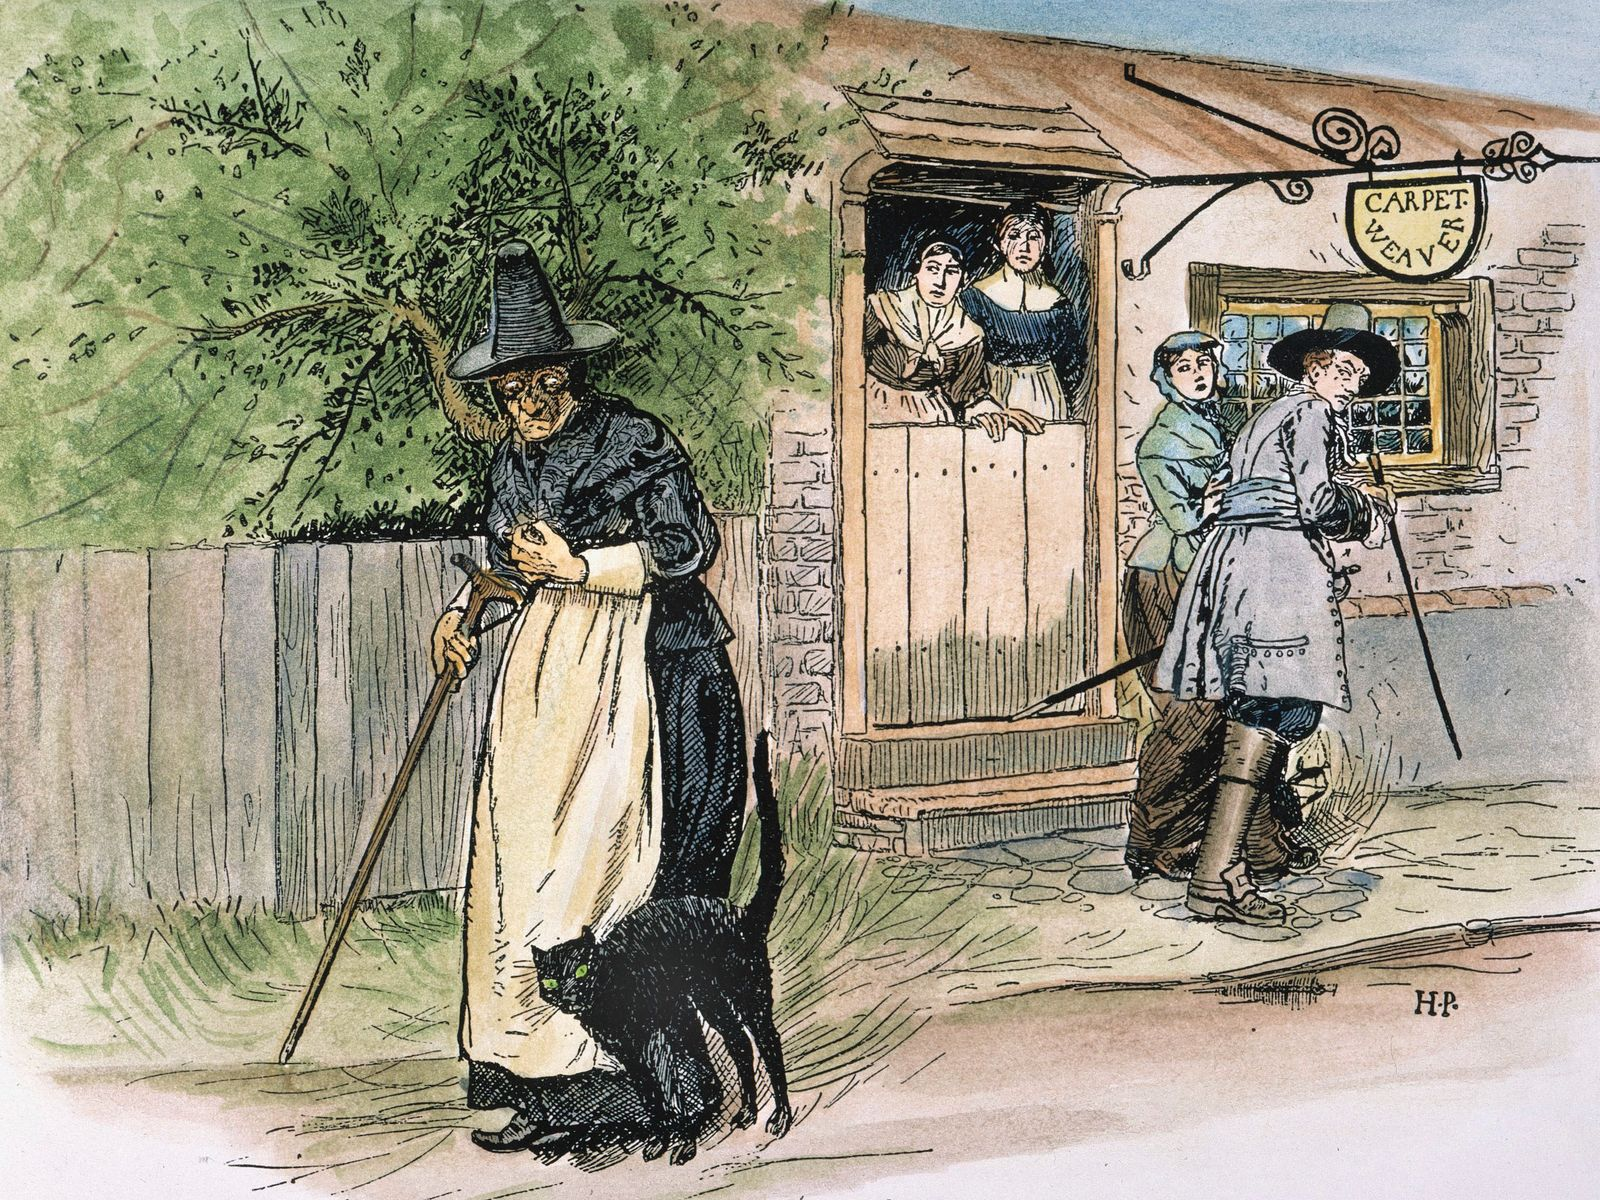 """SALEM WITCH TRIALS. An old woman viewed with suspicion on the streets of Salem, Mass., at the time of the witch trials: illustration, 1883, by Howard Pyle to accompany his poem, """"Ye True Story of Granny Greene of Salem Towne."""""""